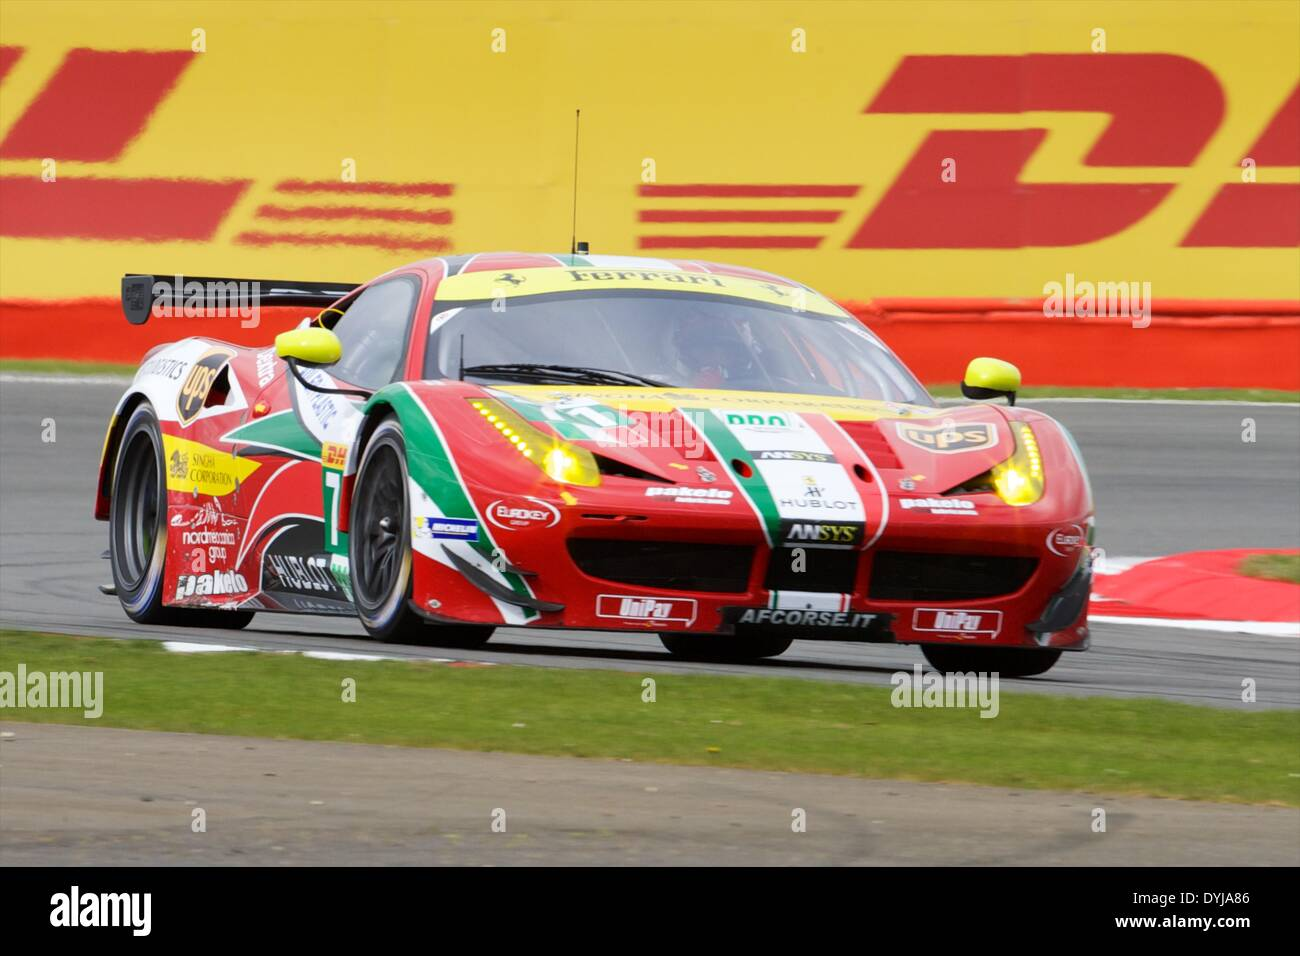 Silverstone, UK. 19th Apr, 2013. AF CORSE Ferrari F458 Italia LMGTE Pro driven by Davide Rigon (ITA) and James Calado Stock Photo